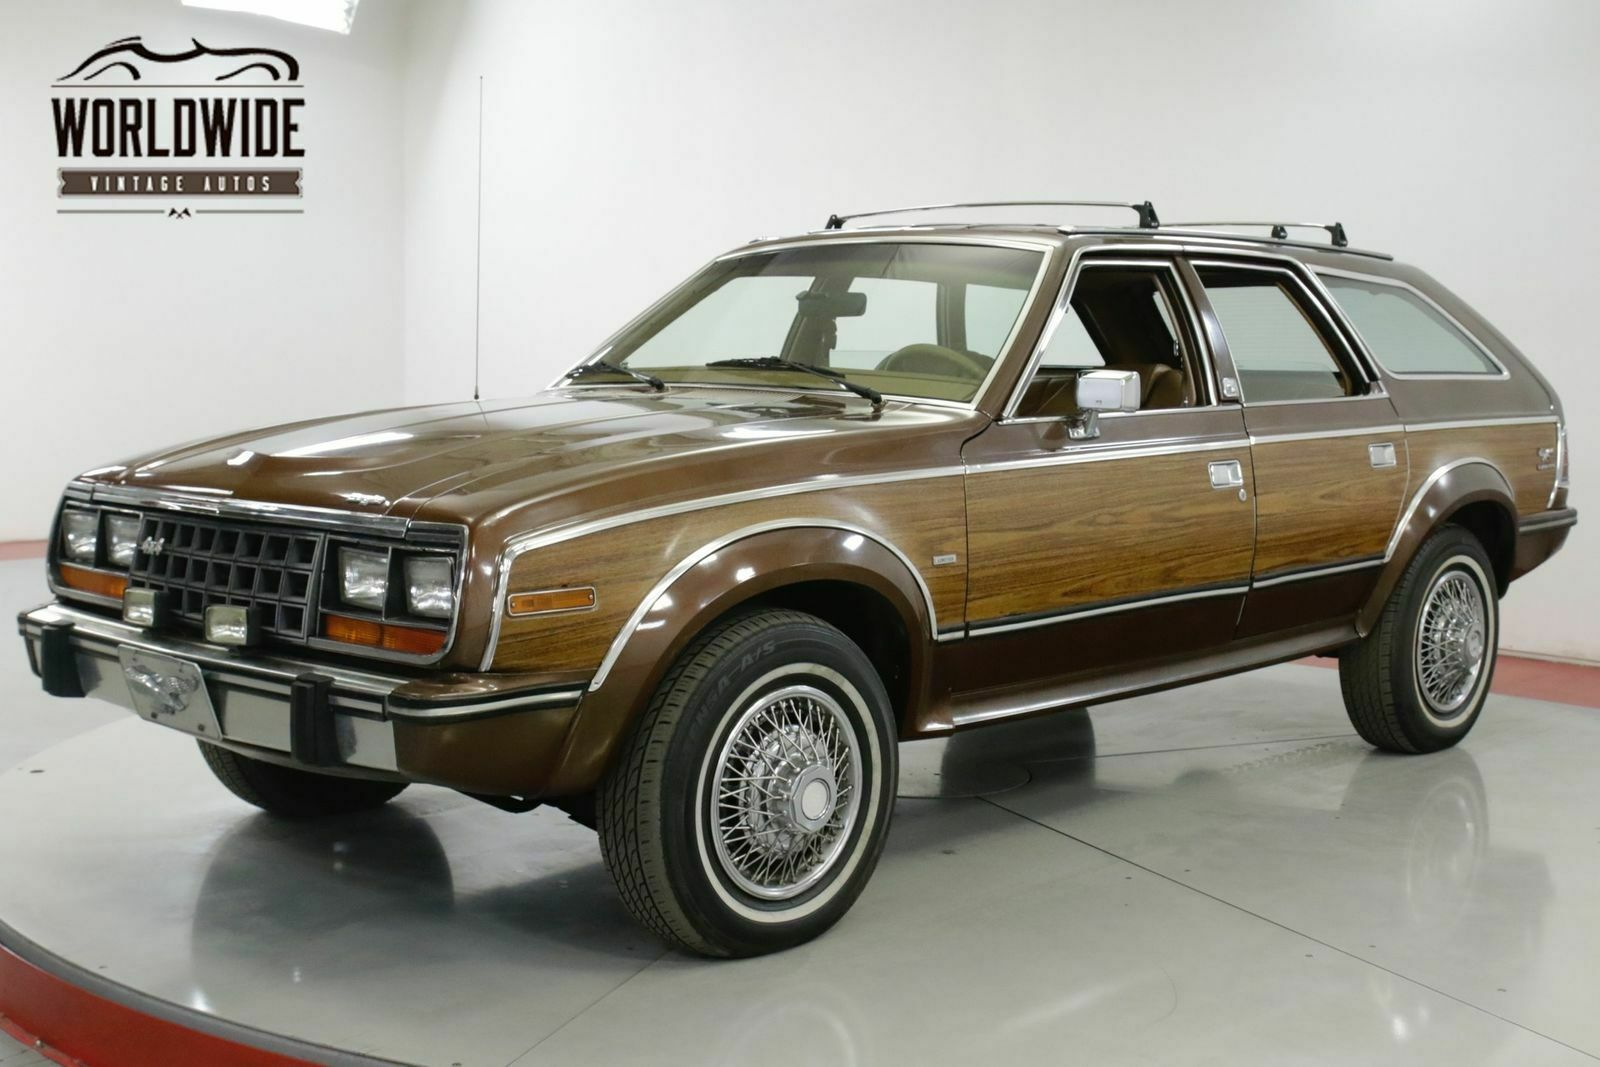 This AMC Eagle Is the Crossover-Alternative for the Righteous and Just